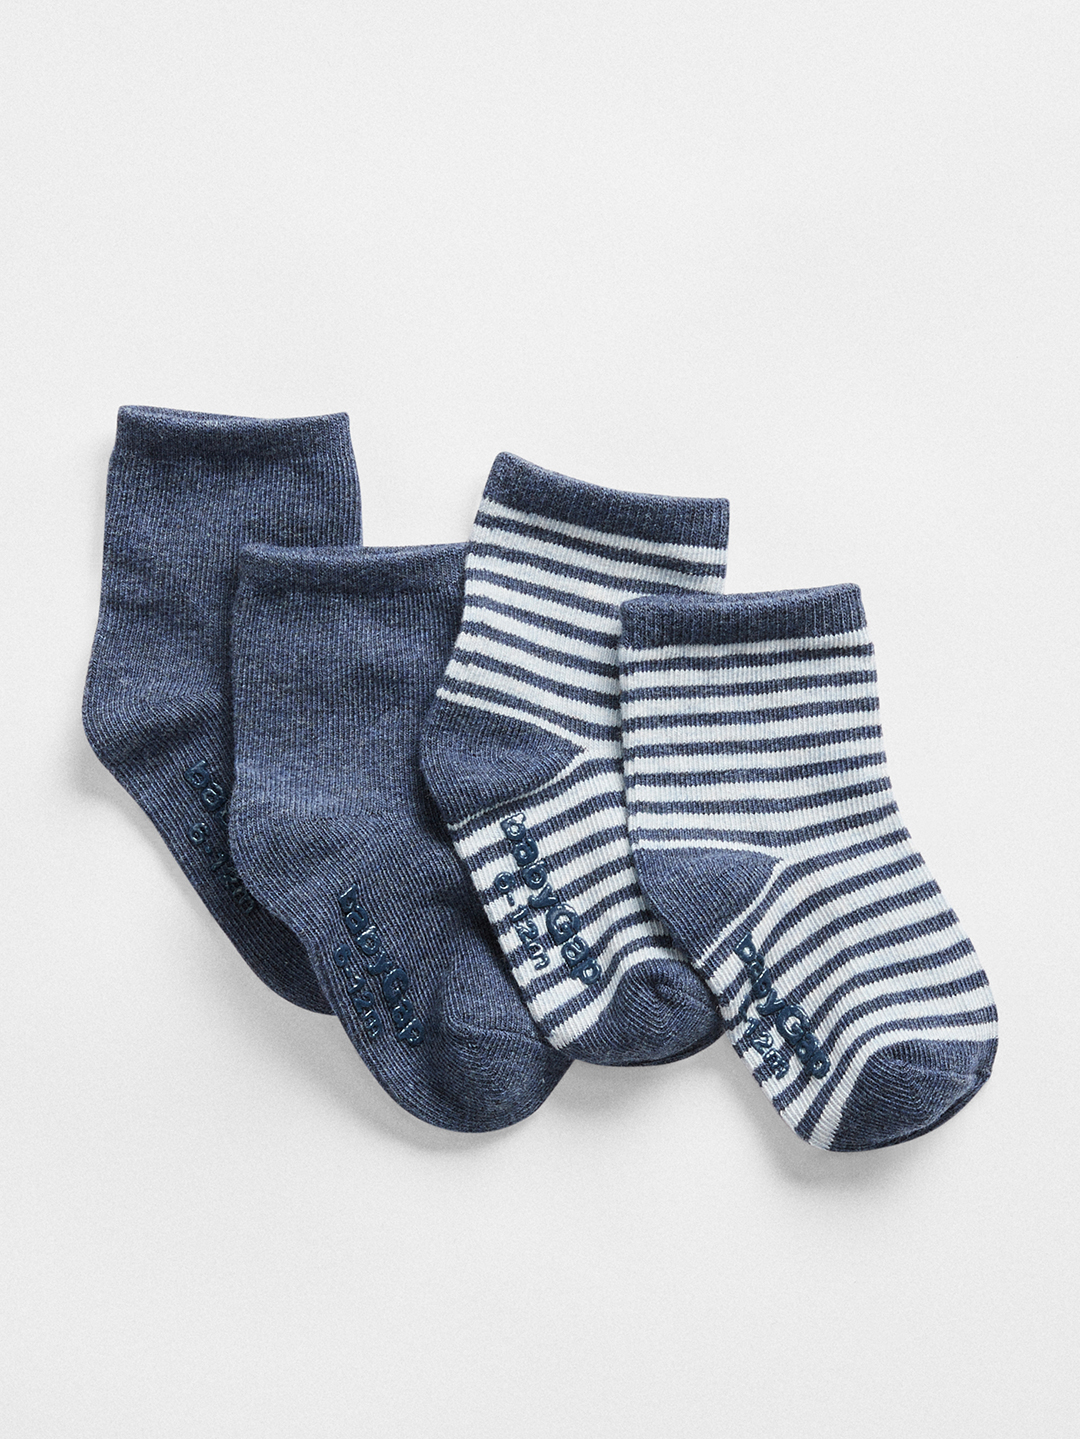 Best Baby and Infant Socks According to Moms